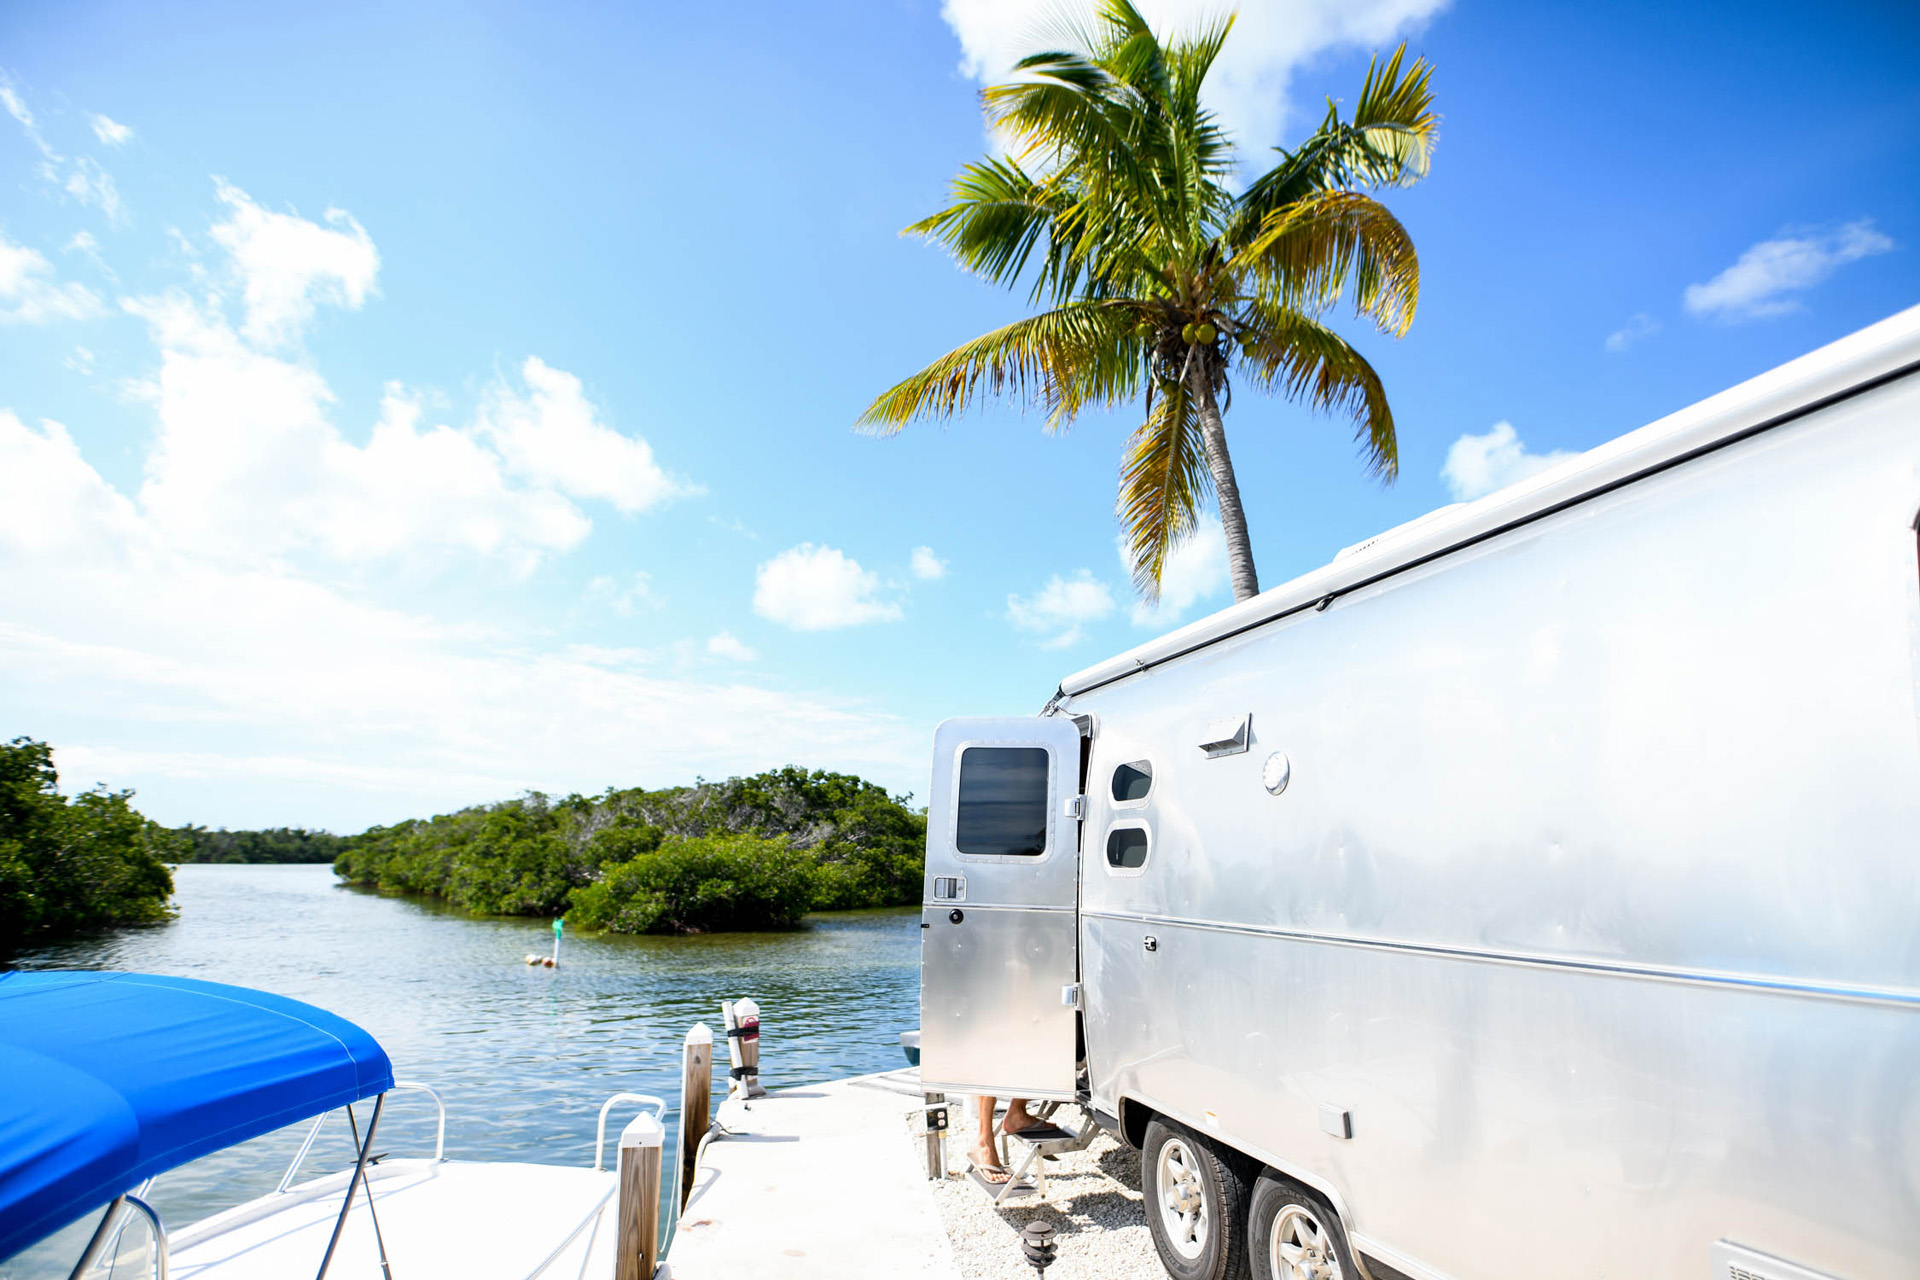 Airstream Travel Trailer with Tropica Tree and Surrounding Water